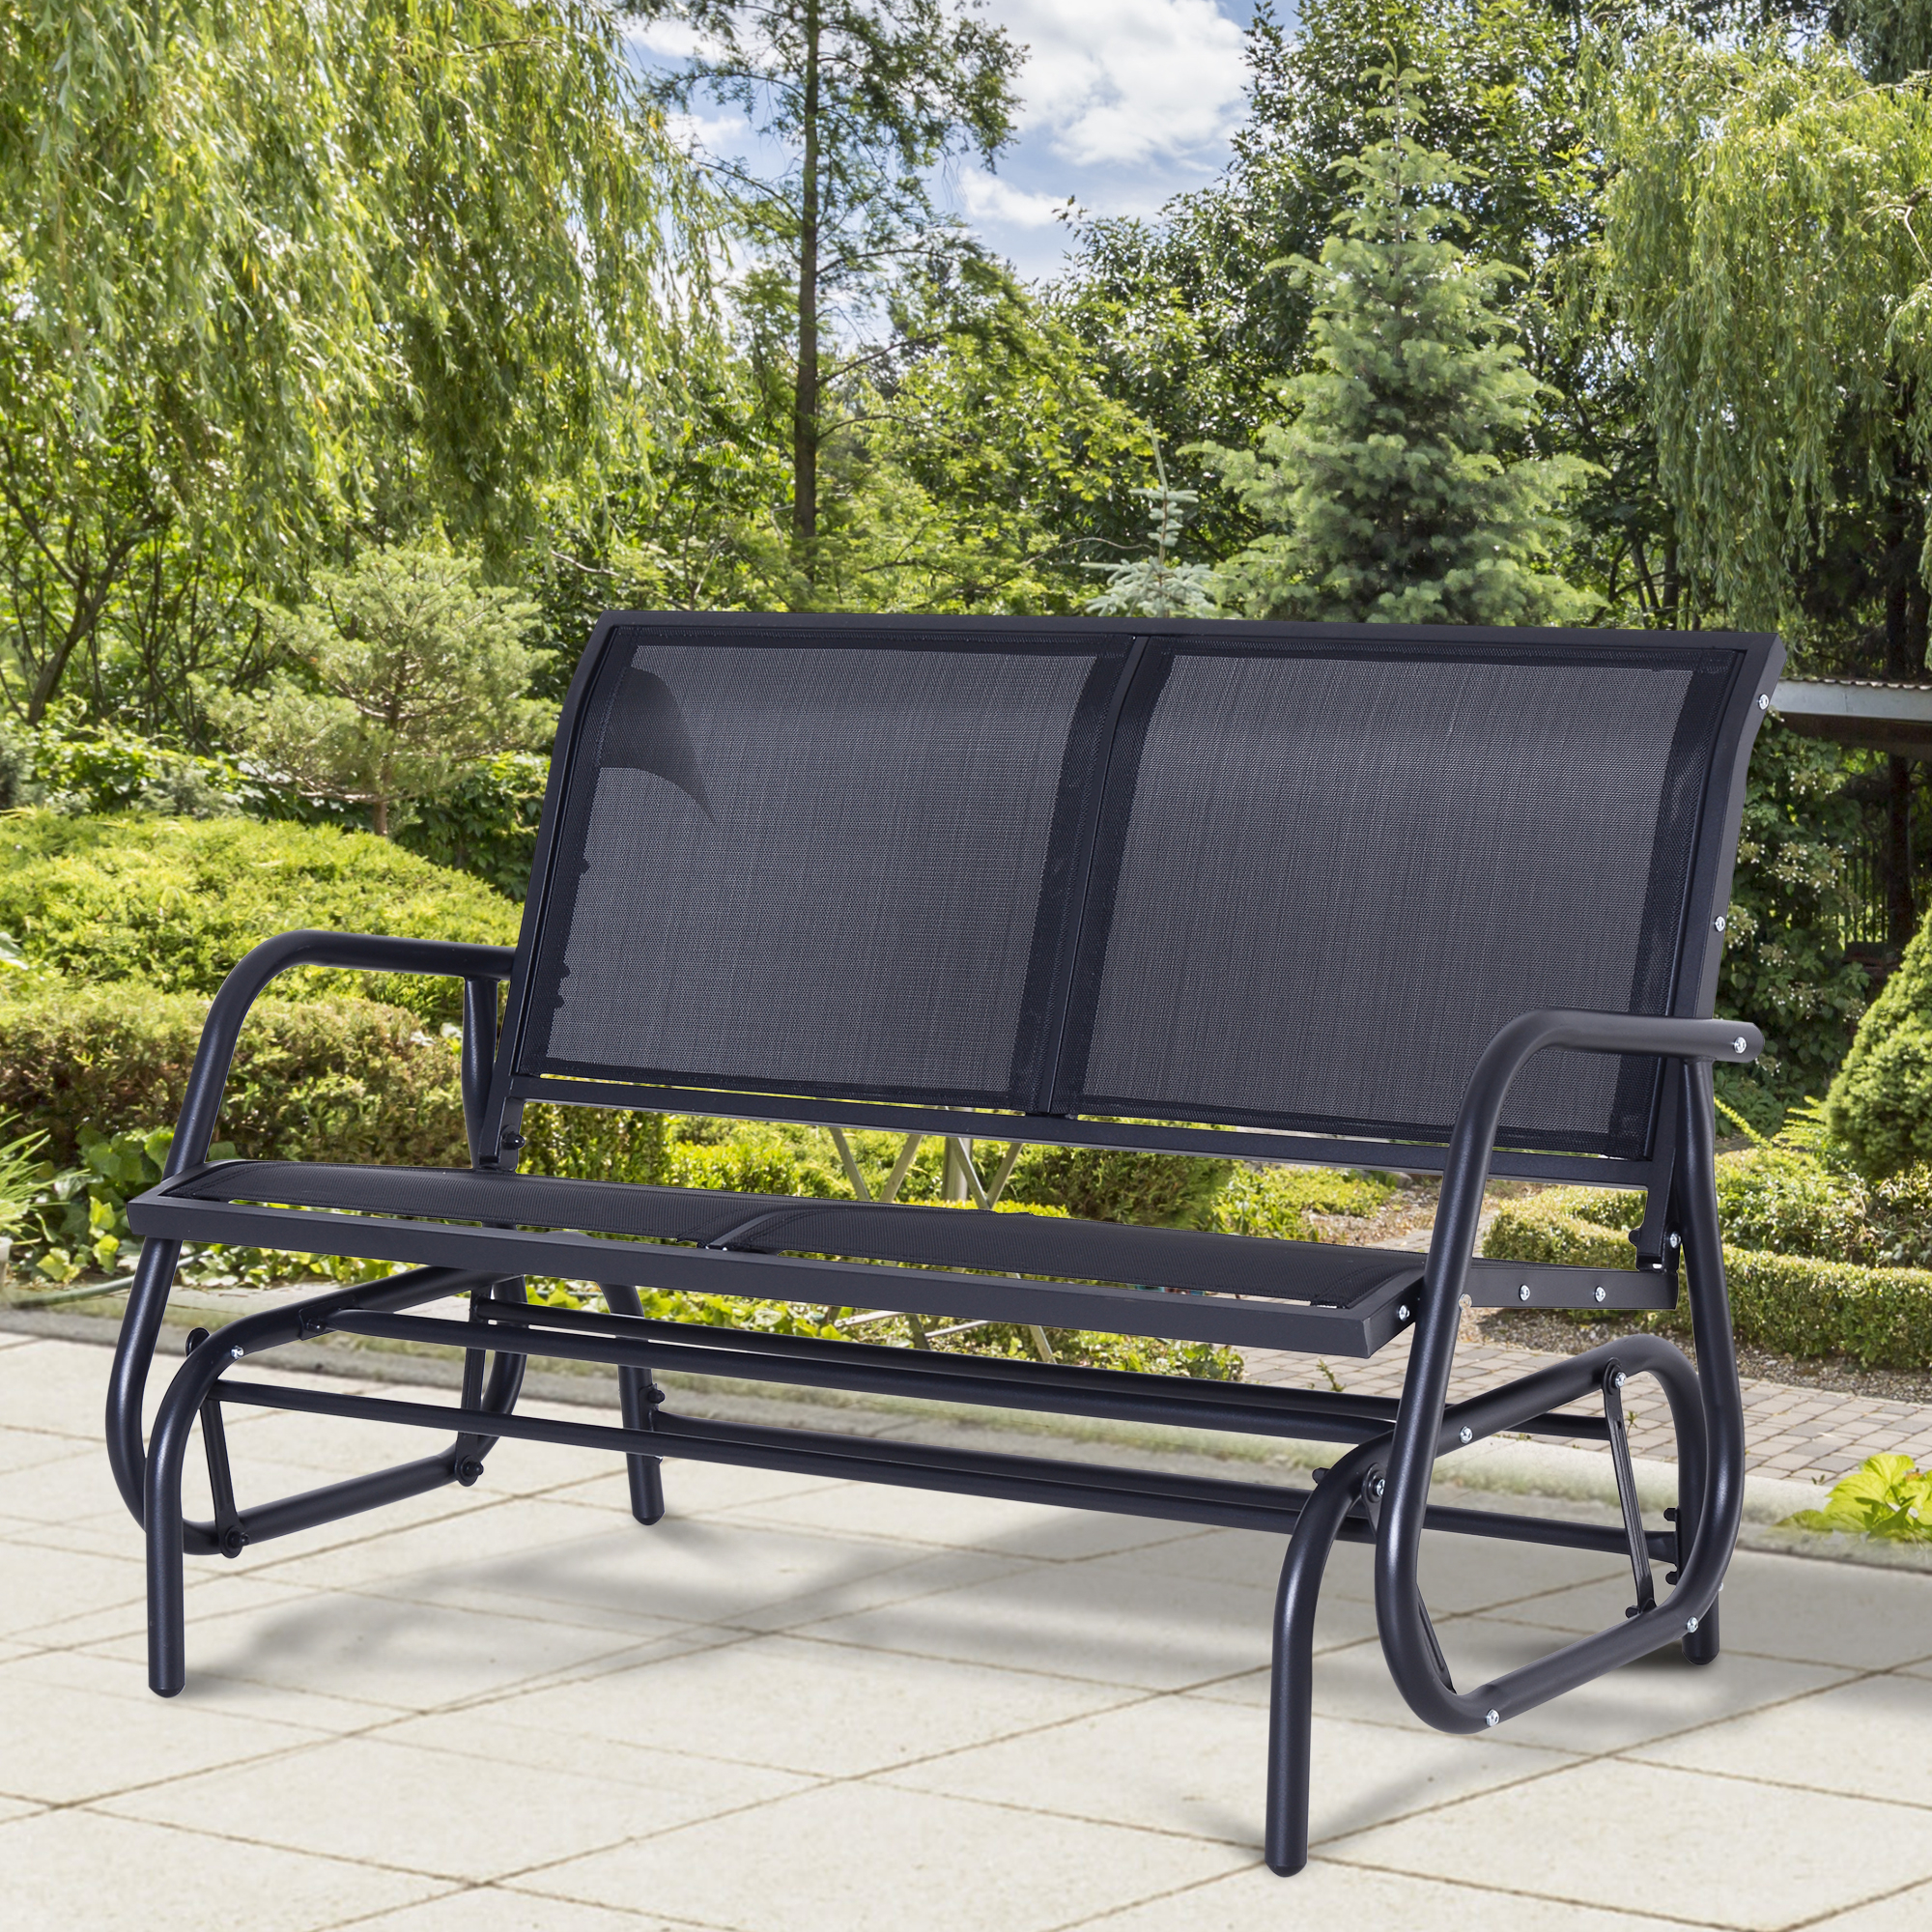 2020 2 Person Antique Black Iron Outdoor Gliders With Regard To Details About Outsunny Patio Double 2 Person Glider Bench Rocker Porch Love Seat Swing Chair (View 8 of 25)